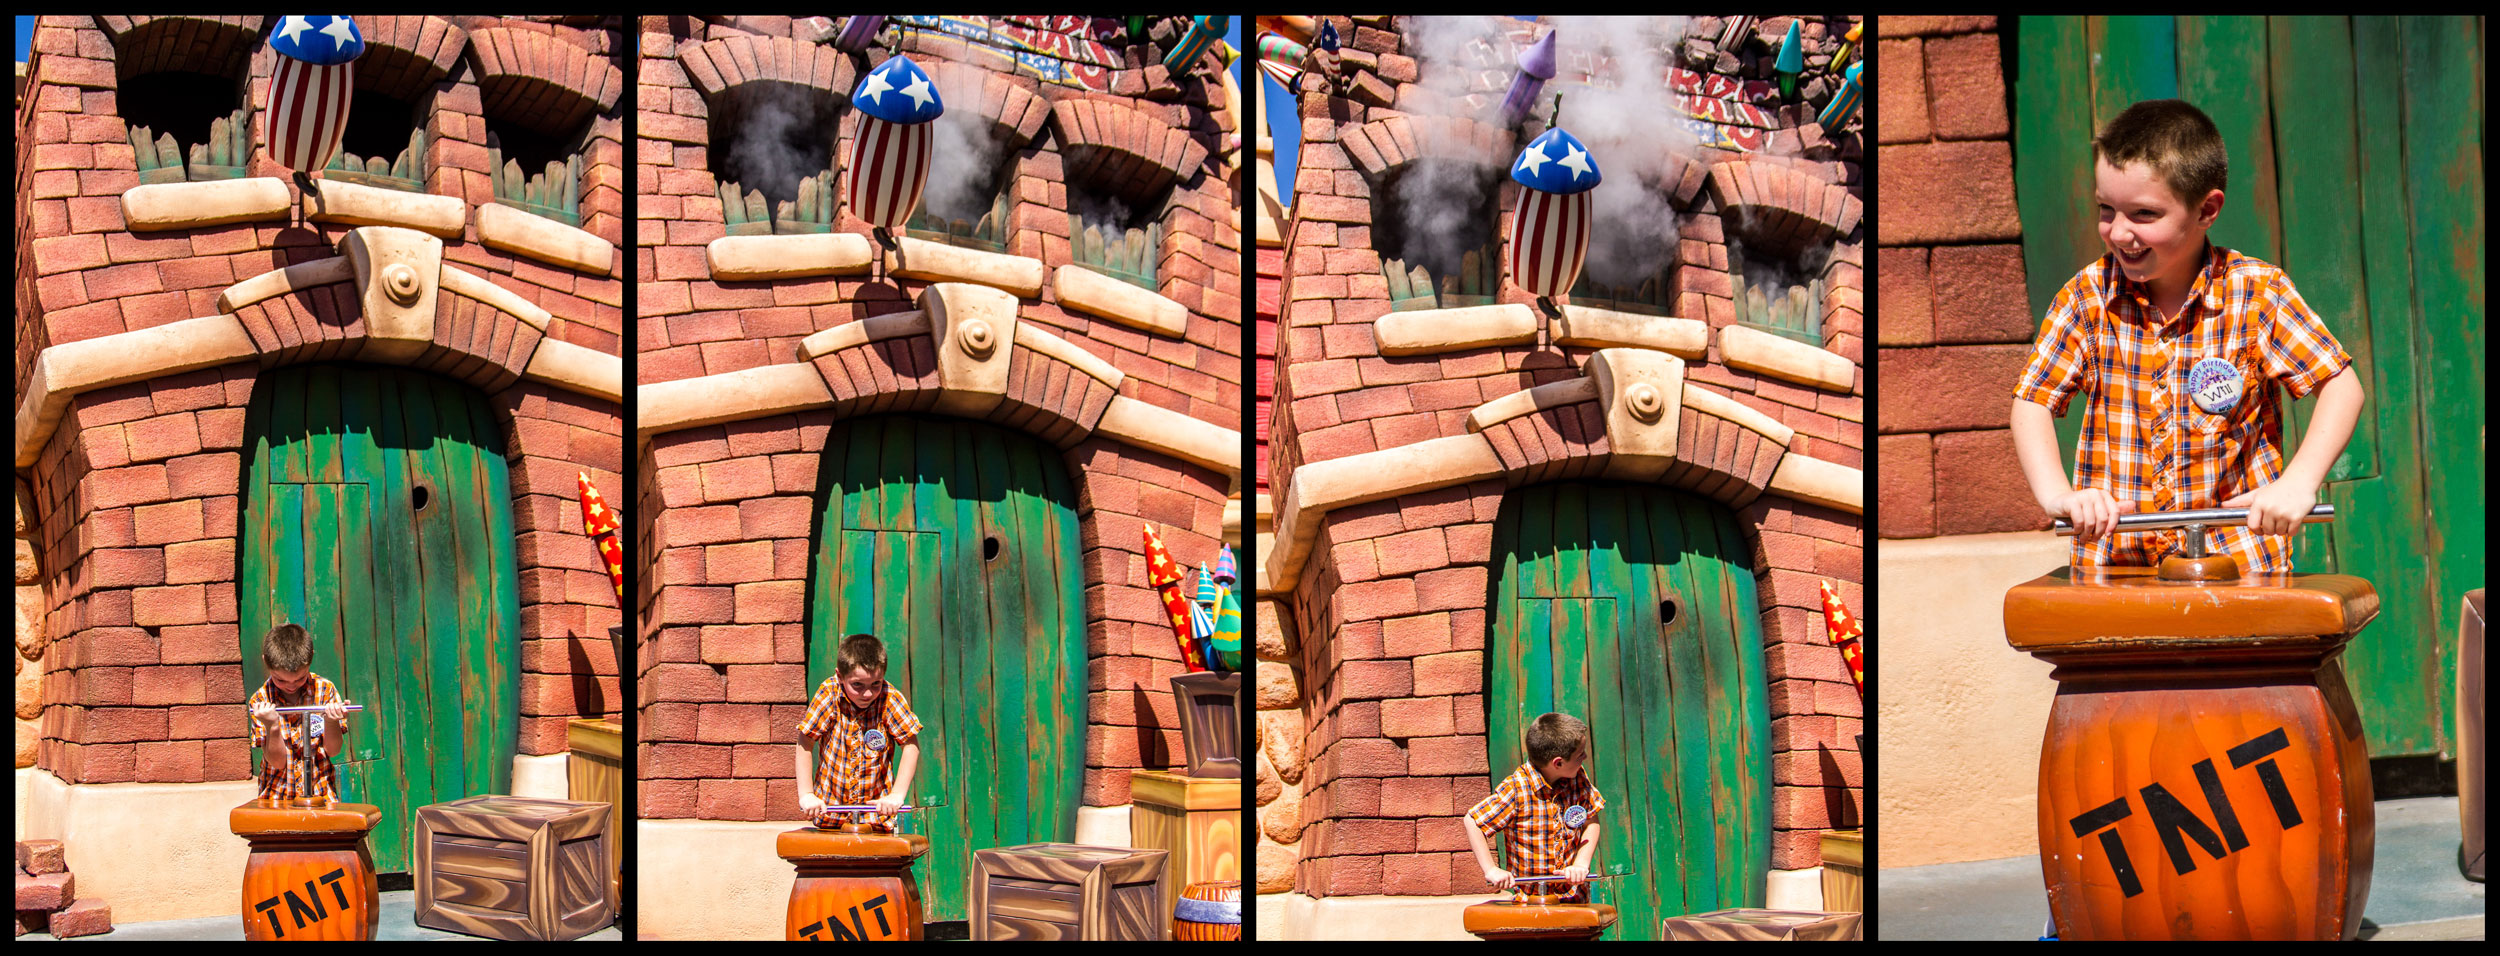 Will enjoying some pyrotechnics in Toon Town